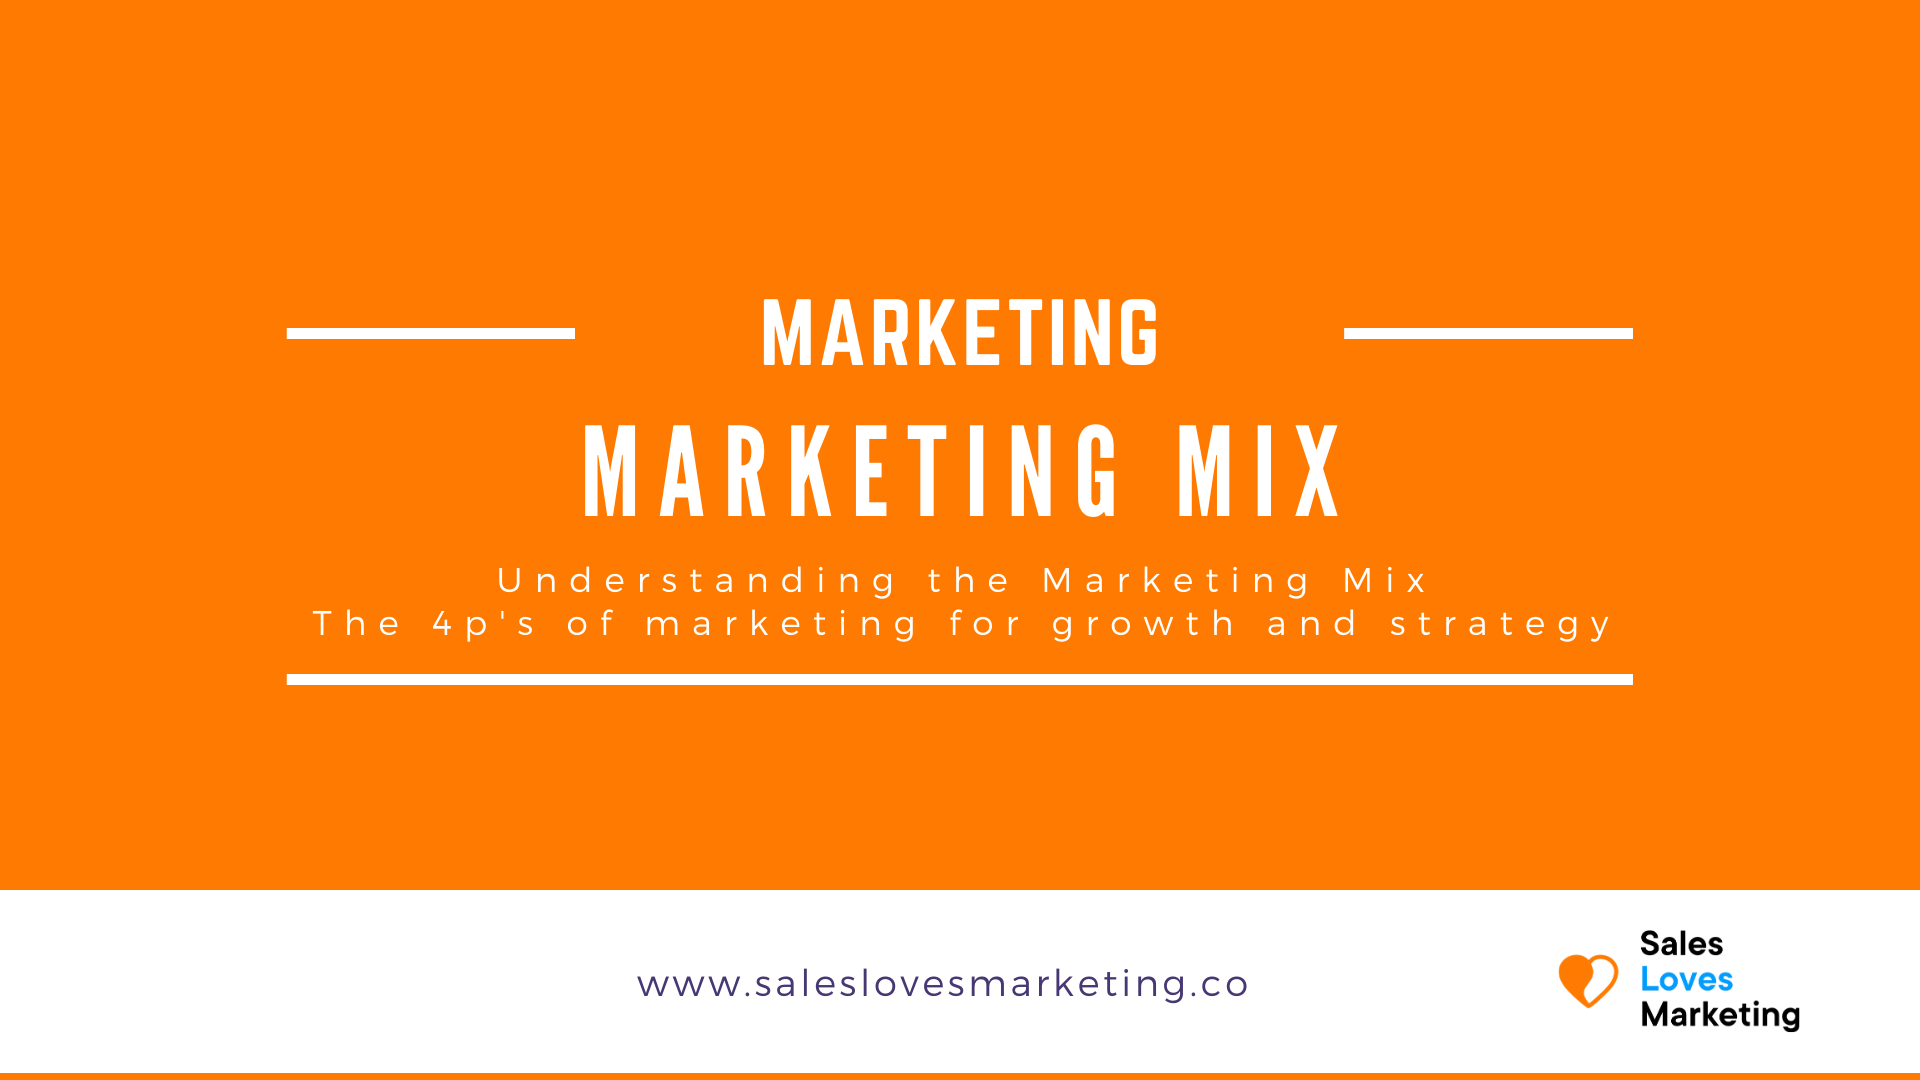 Get more information about the marketing mix, the four p's of marketing and more